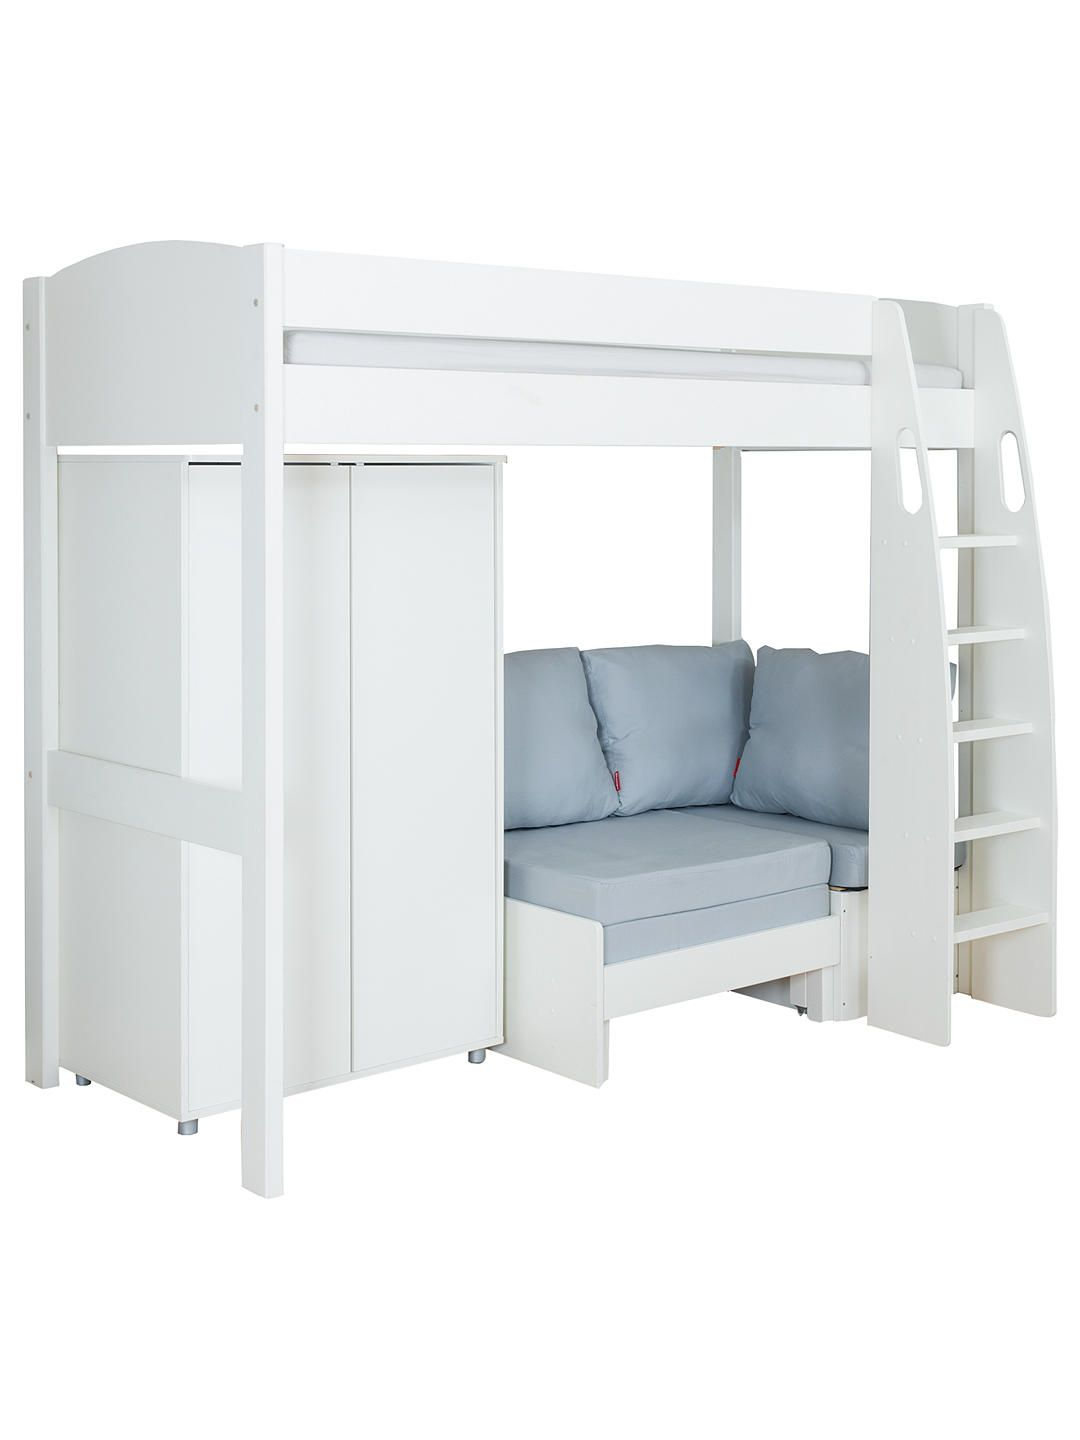 Superb Stompa Uno S Plus High Sleeper Bed With Wardrobe And Chair Theyellowbook Wood Chair Design Ideas Theyellowbookinfo